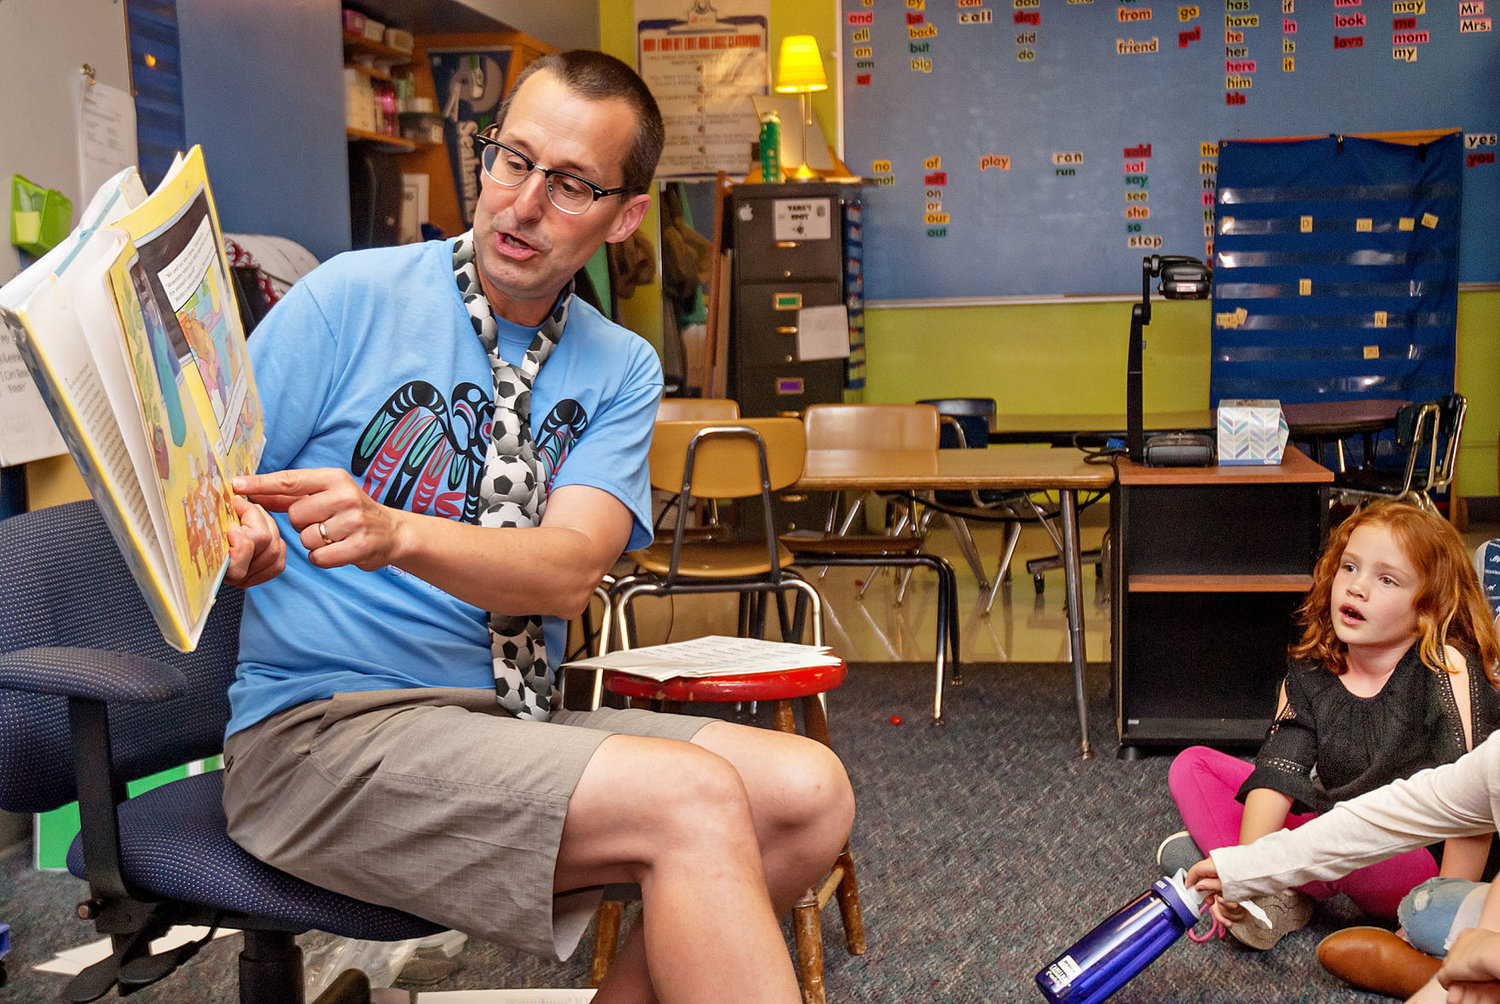 Grant Street Elementary School second-grade teacher Peter Braden enthusiastically reads from a book during the first day of school Sept. 5 as student Hope Quinn, 7, of Port Townsend, listens. Quinn is the daughter of Ashley Quinn. Photo by Chris Tucker